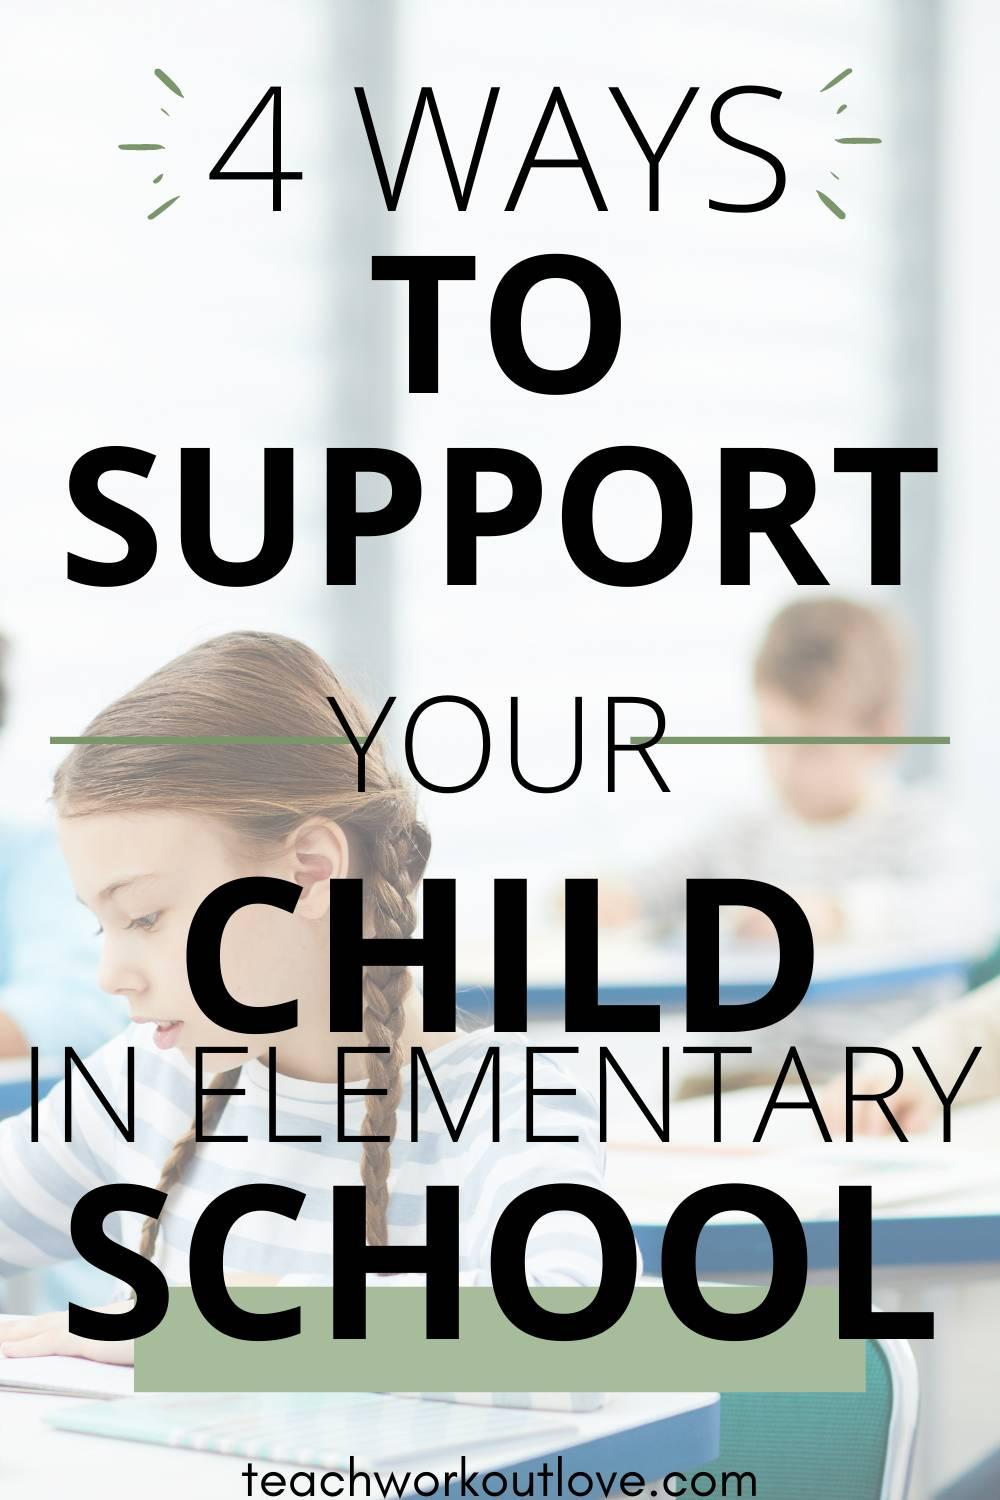 Here's some tips on how to be a supportive parent throughout your child's earliest days in school and help your child in elementary school.